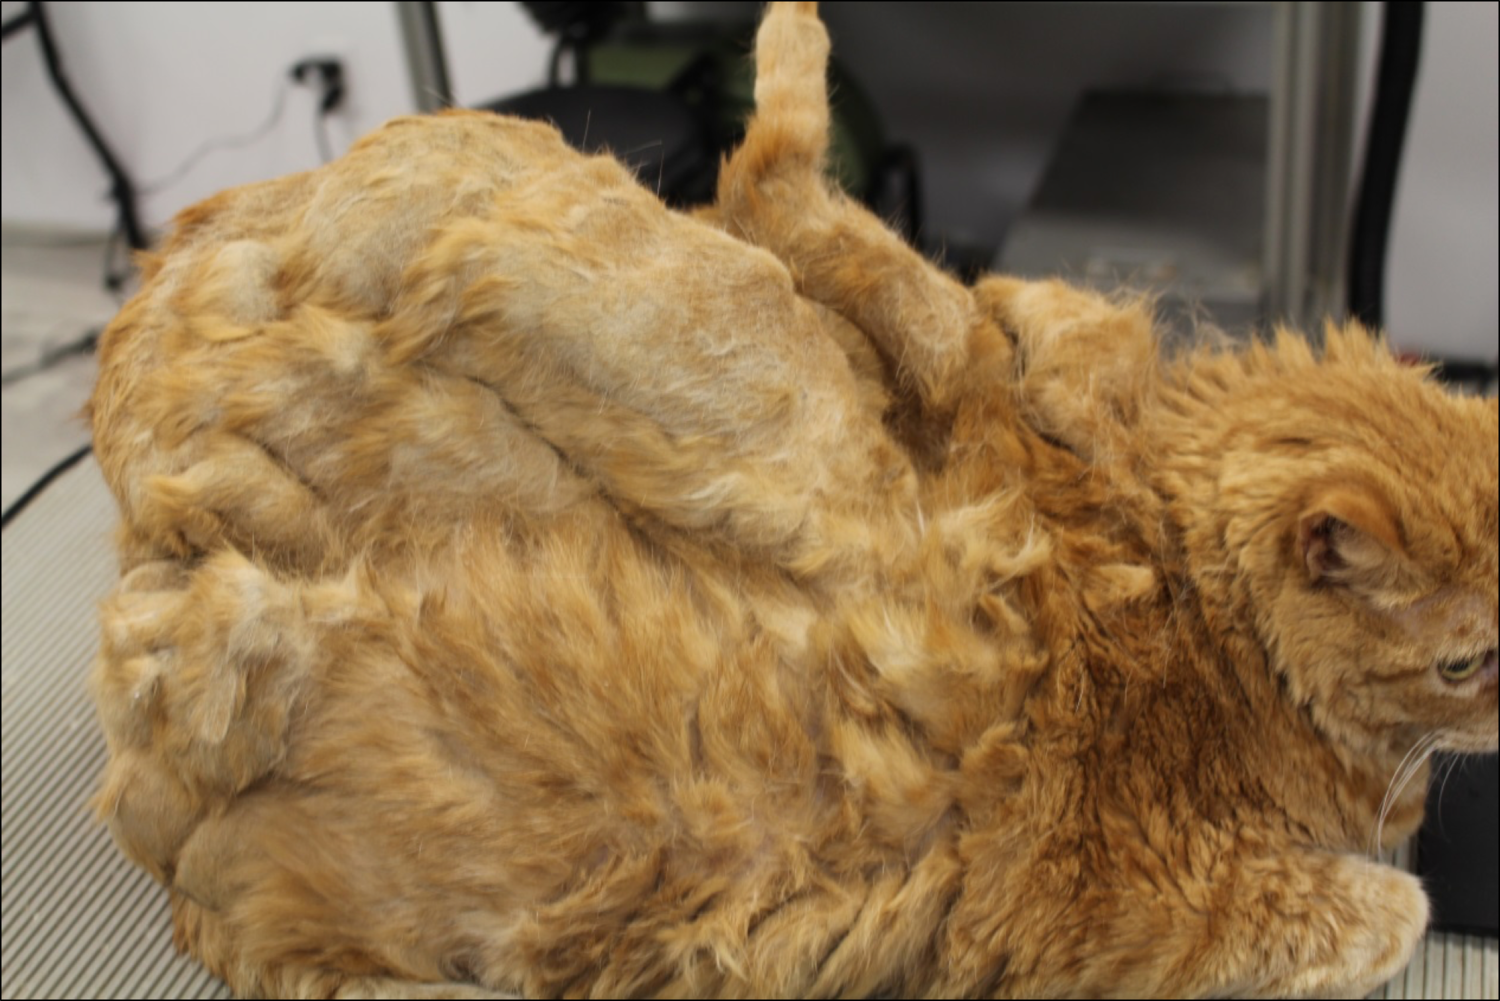 This cat is extensively matted and pelted.  The fur is tightly interwoven to the point where its mobility is impaired